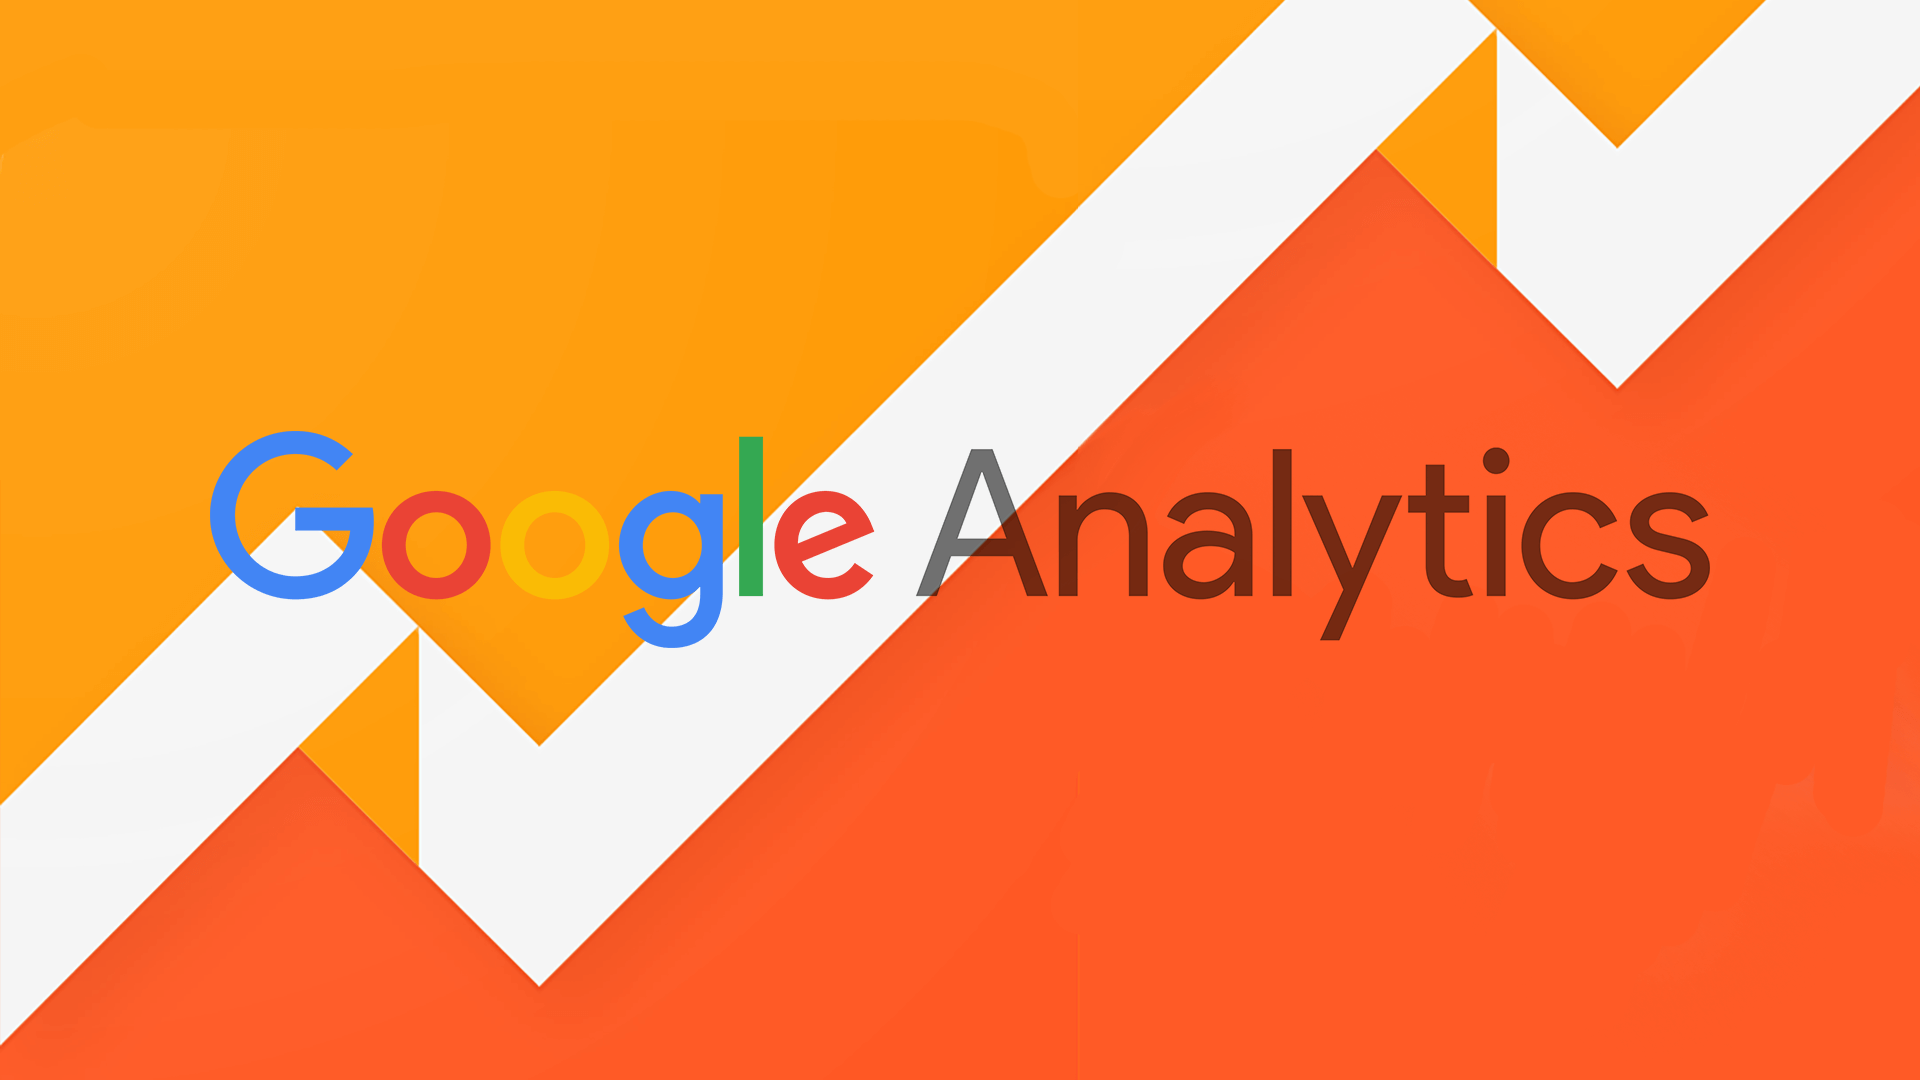 Google Analytic Delivery Platform